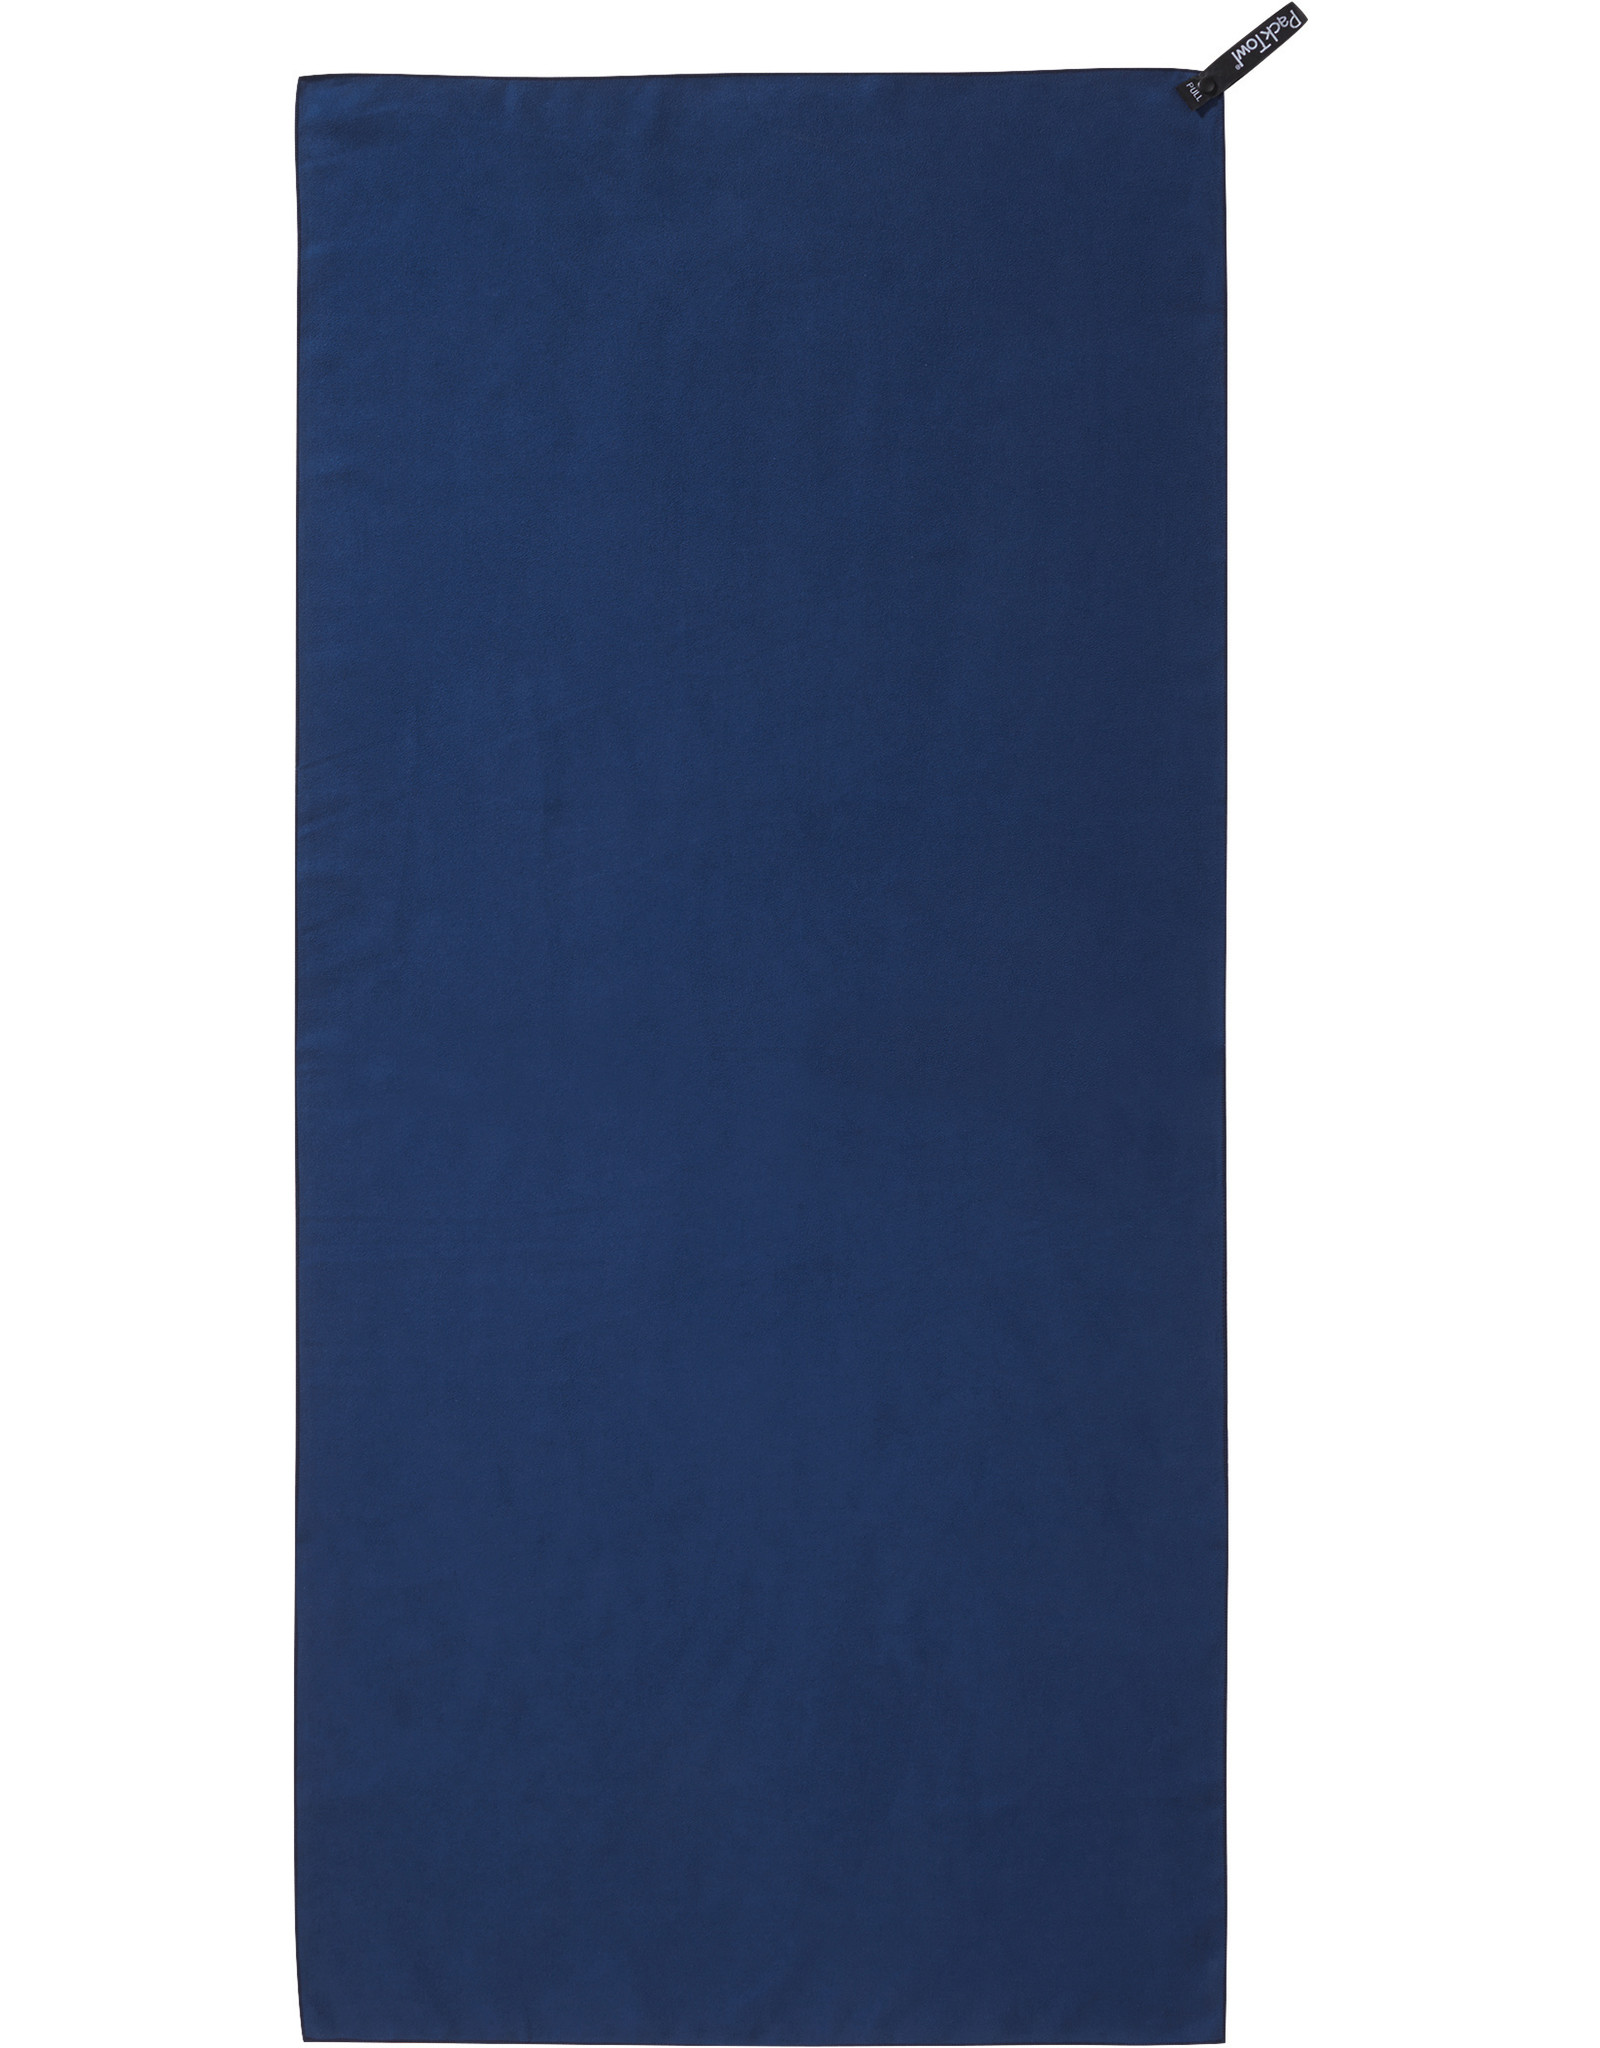 PackTowl PackTowl Personal Body Towel Midnight